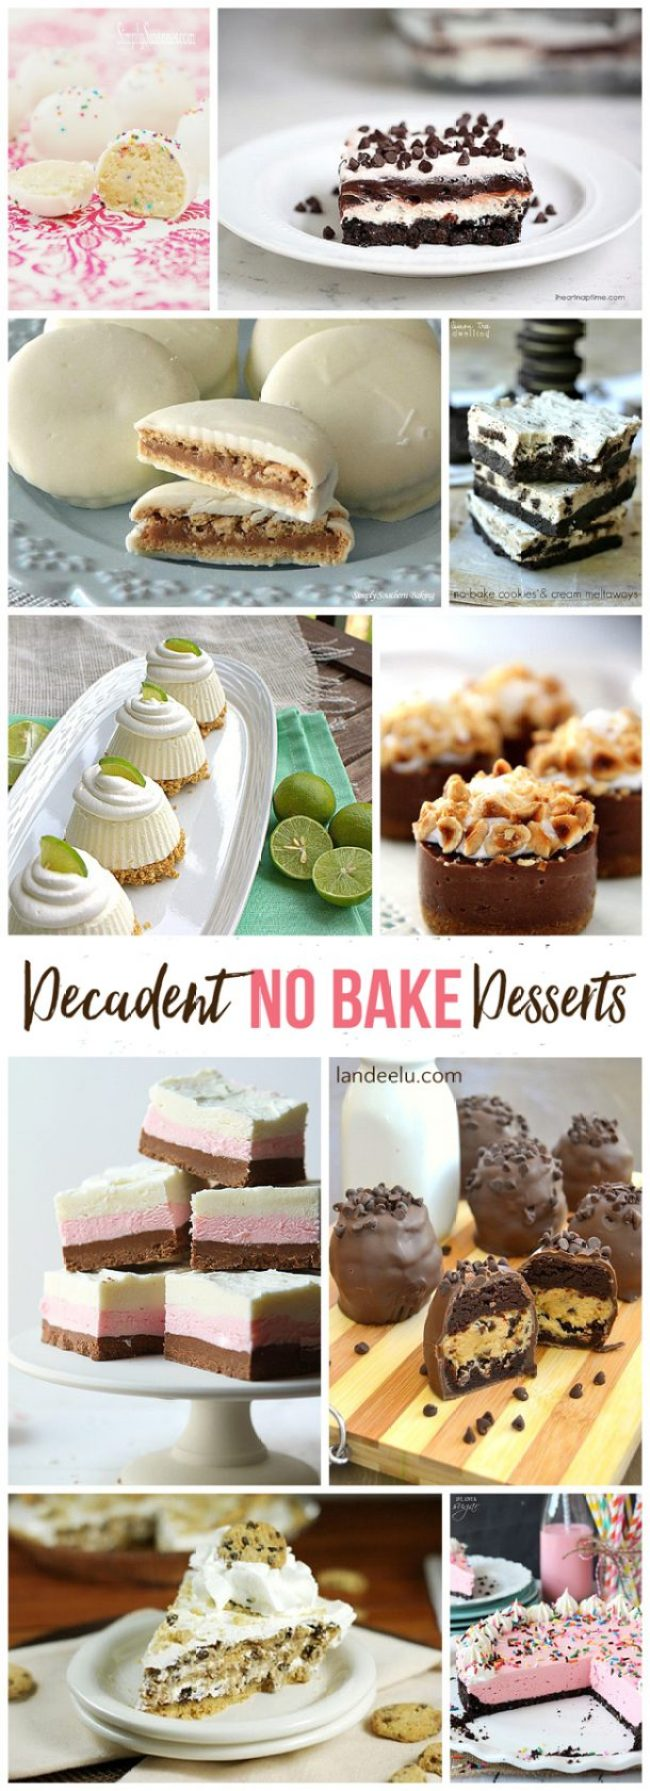 Decadent No Bake Dessert Recipes | landeelu.com